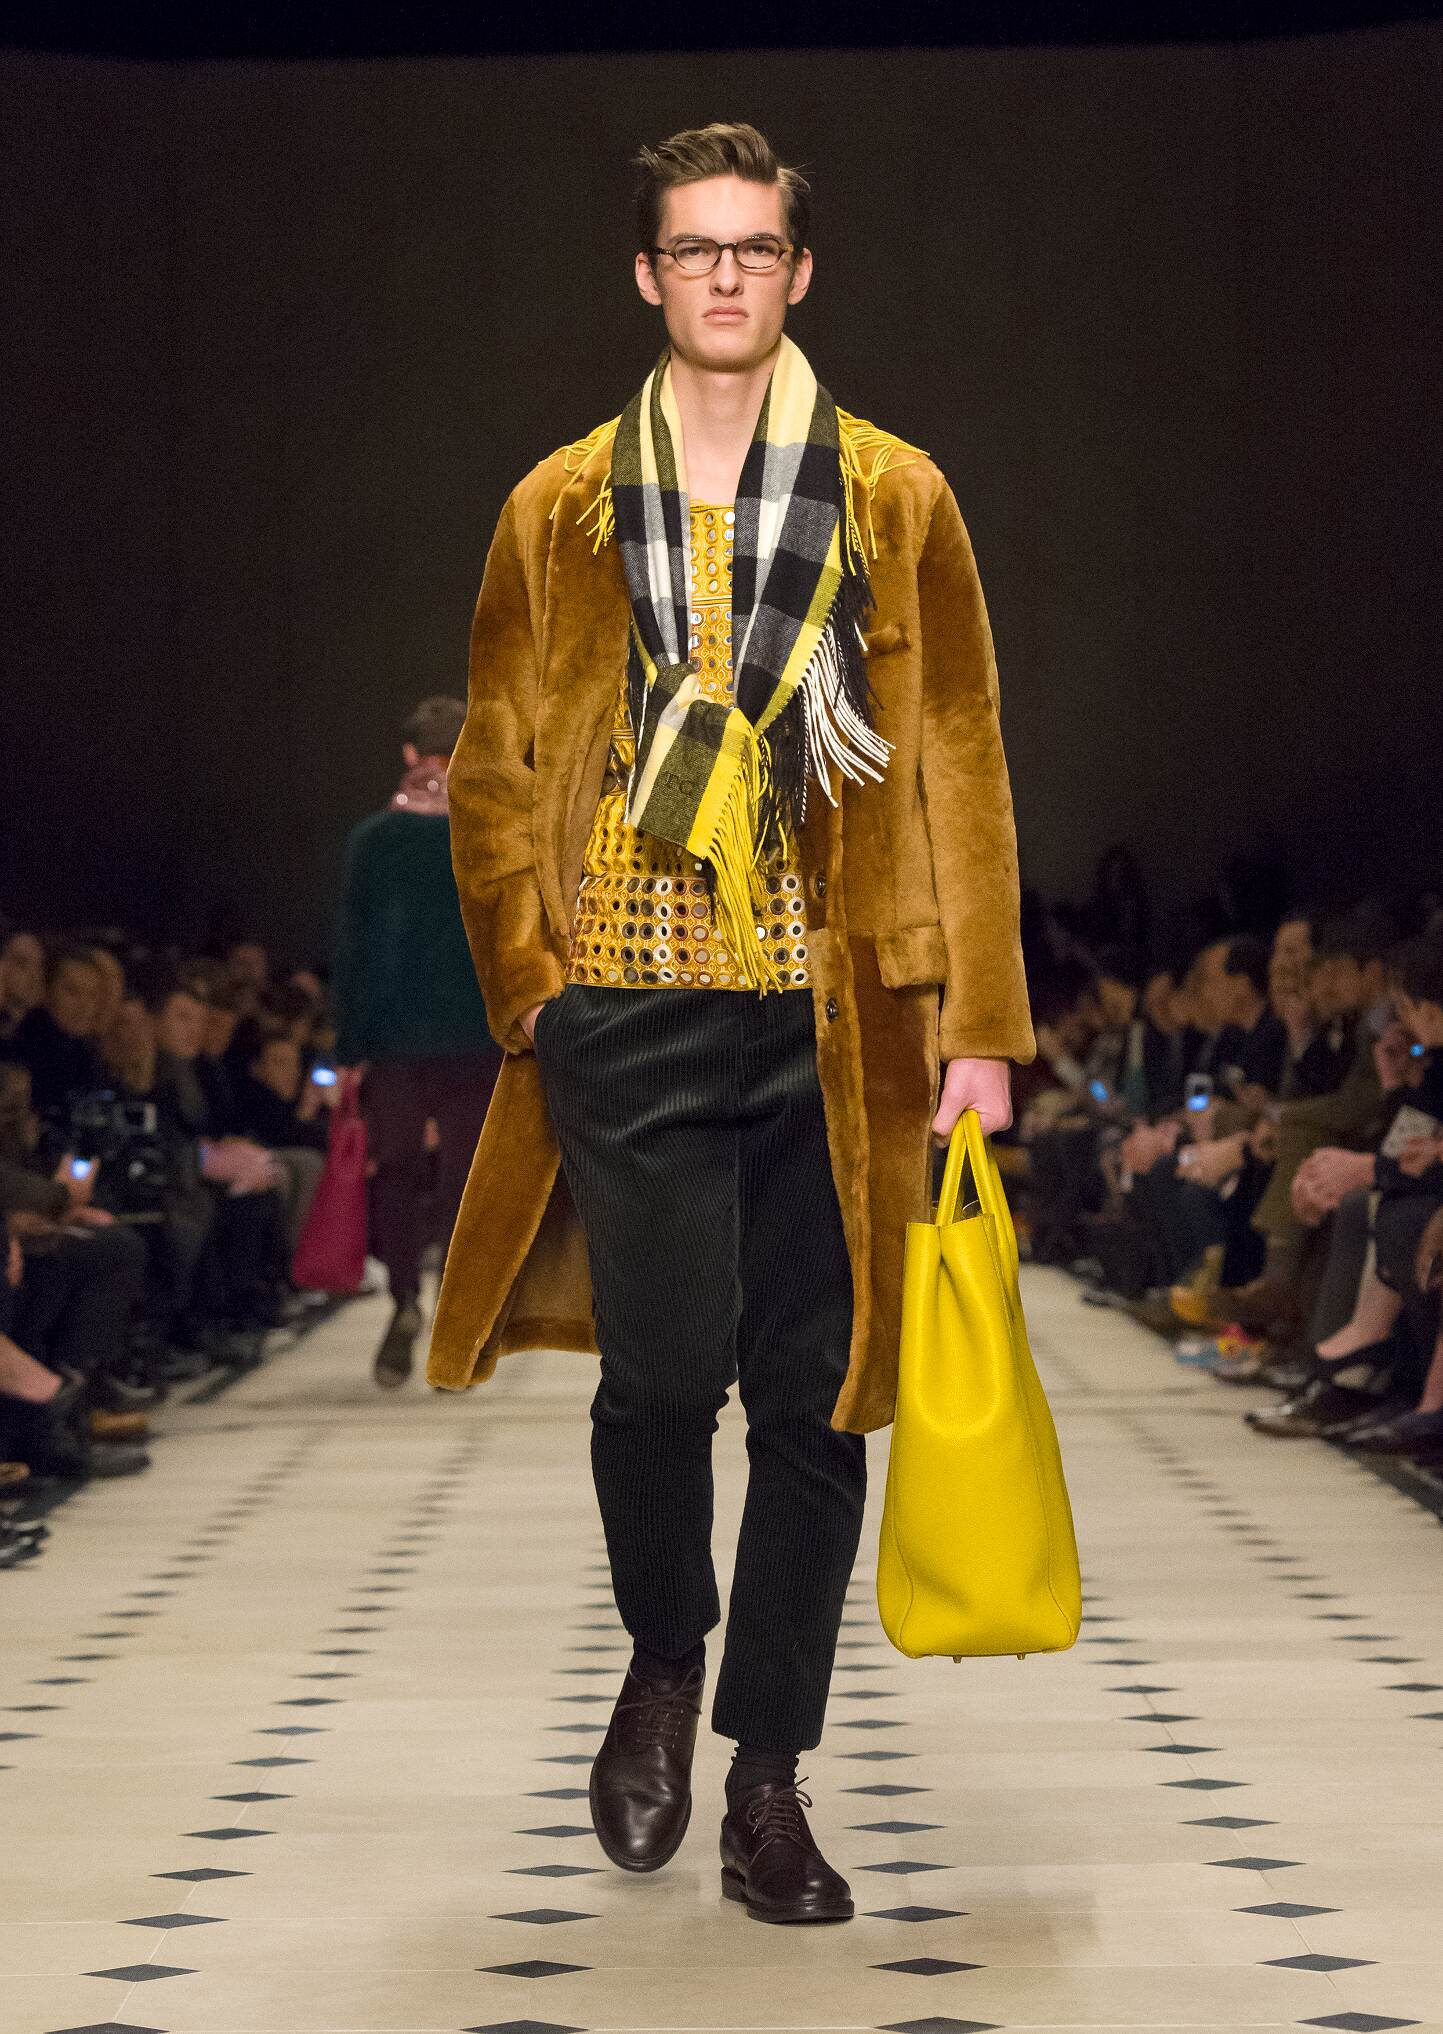 2015 Burberry Prorsum Winter Catwalk